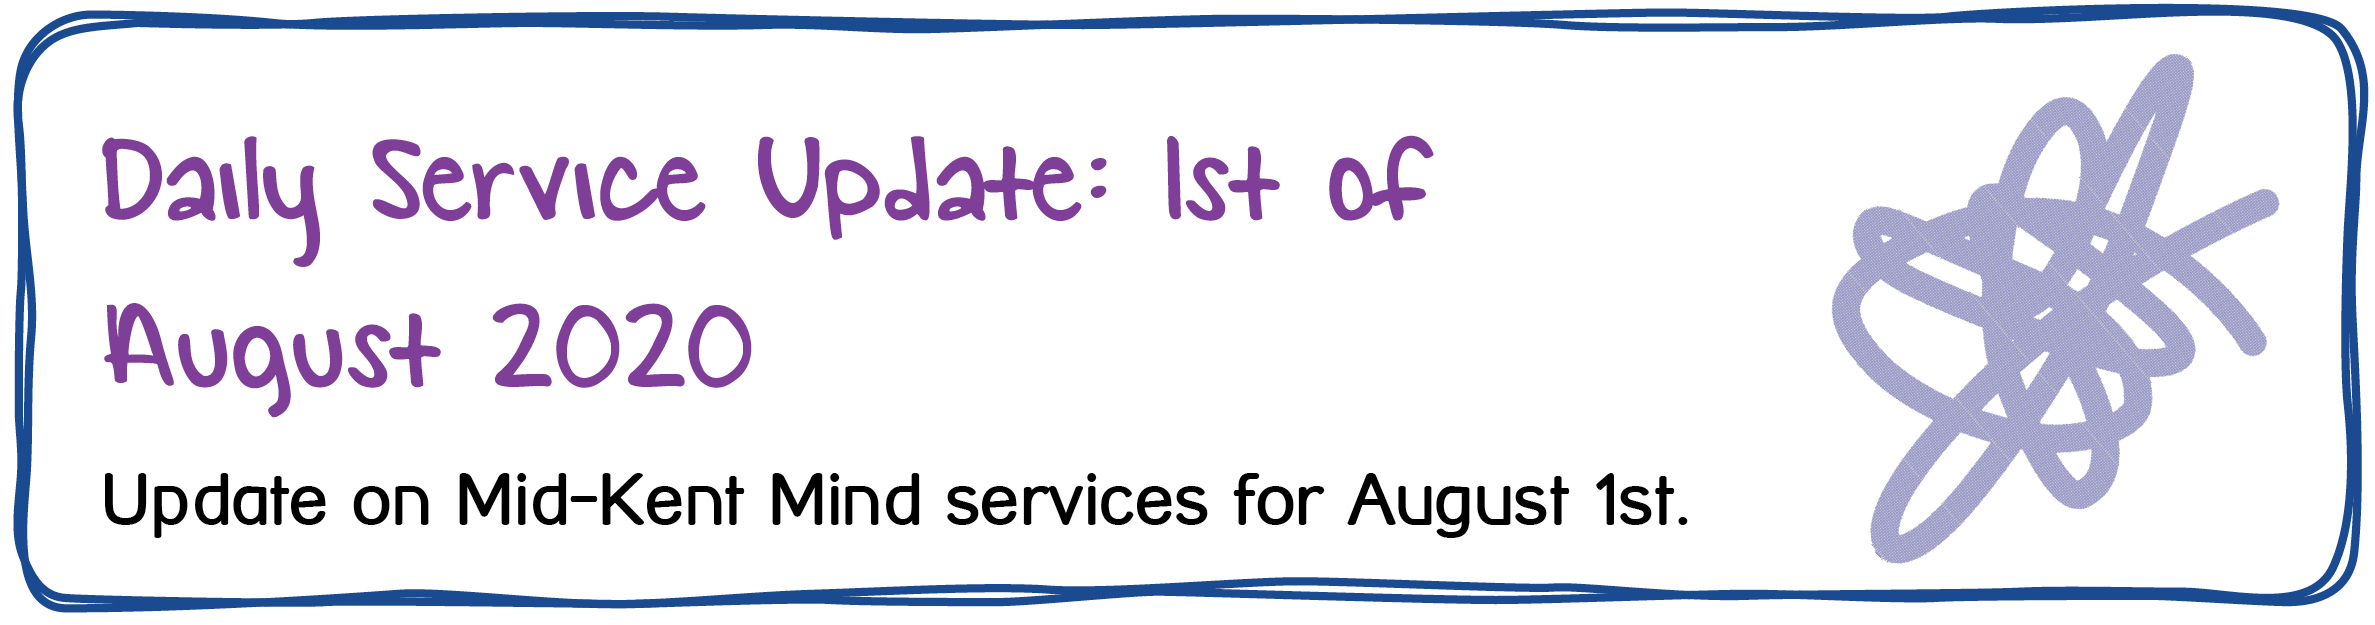 Daily Service Update: 1st of August 2020. Update on Mid-Kent Mind services for August 1st.